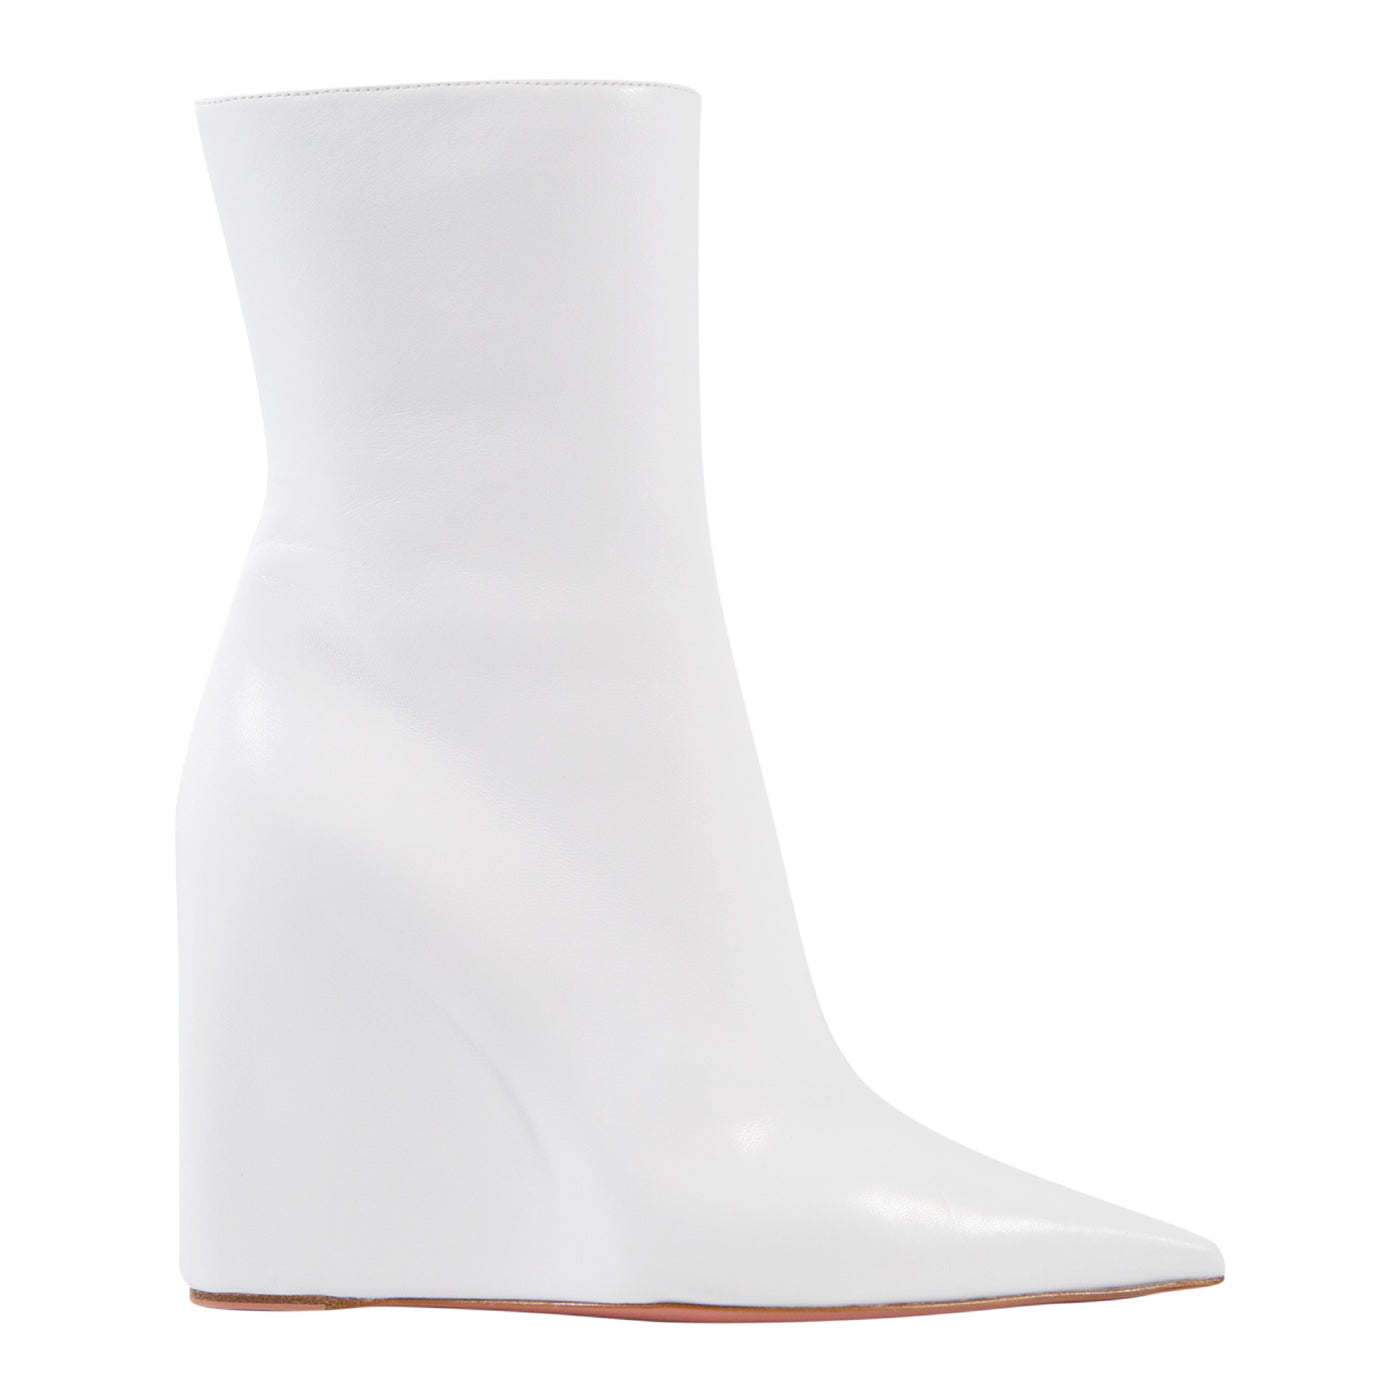 Load image into Gallery viewer, AMINA MUADDI PERNILLE BOOTIE WHITE